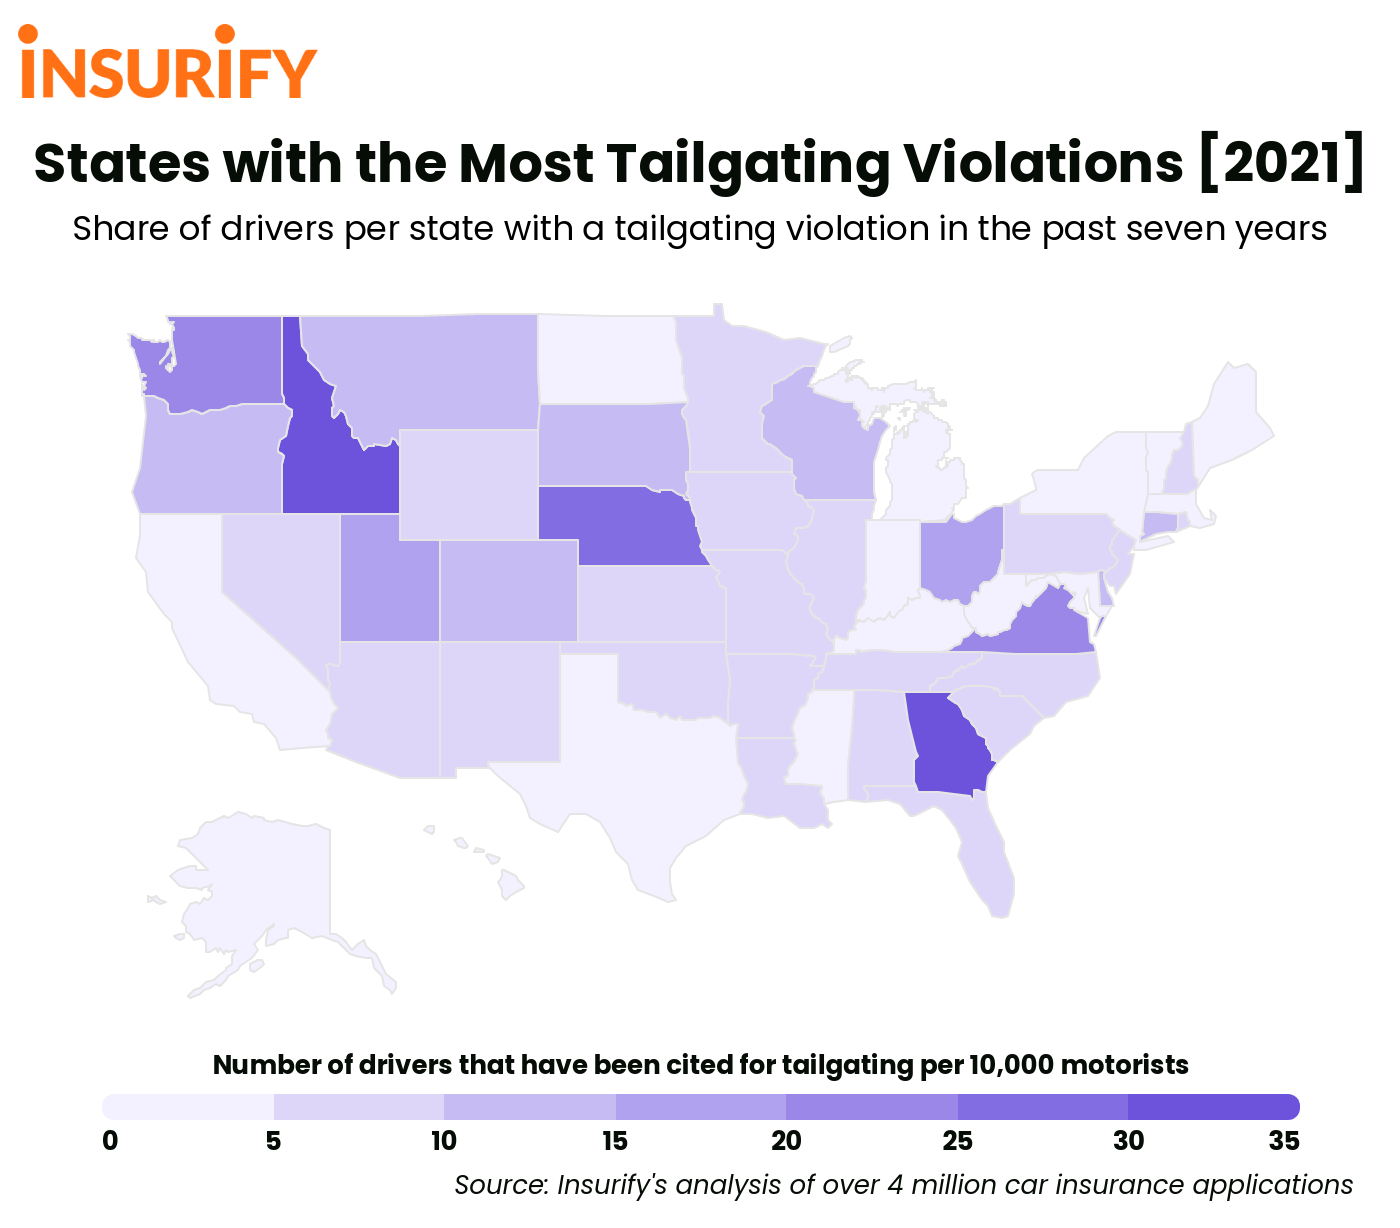 Heat map of the United States showing the states with the highest rates of tailgating in 2021.